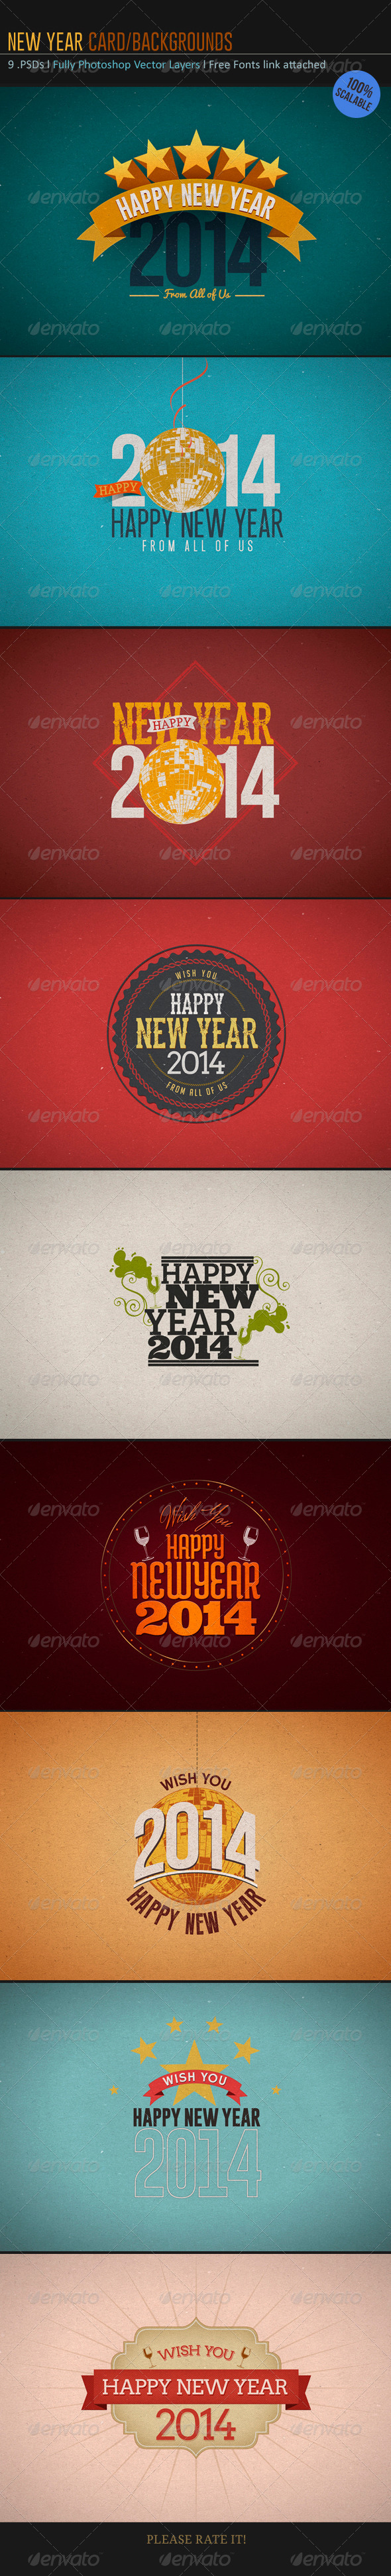 GraphicRiver New Year Card-Backgrounds 6084496